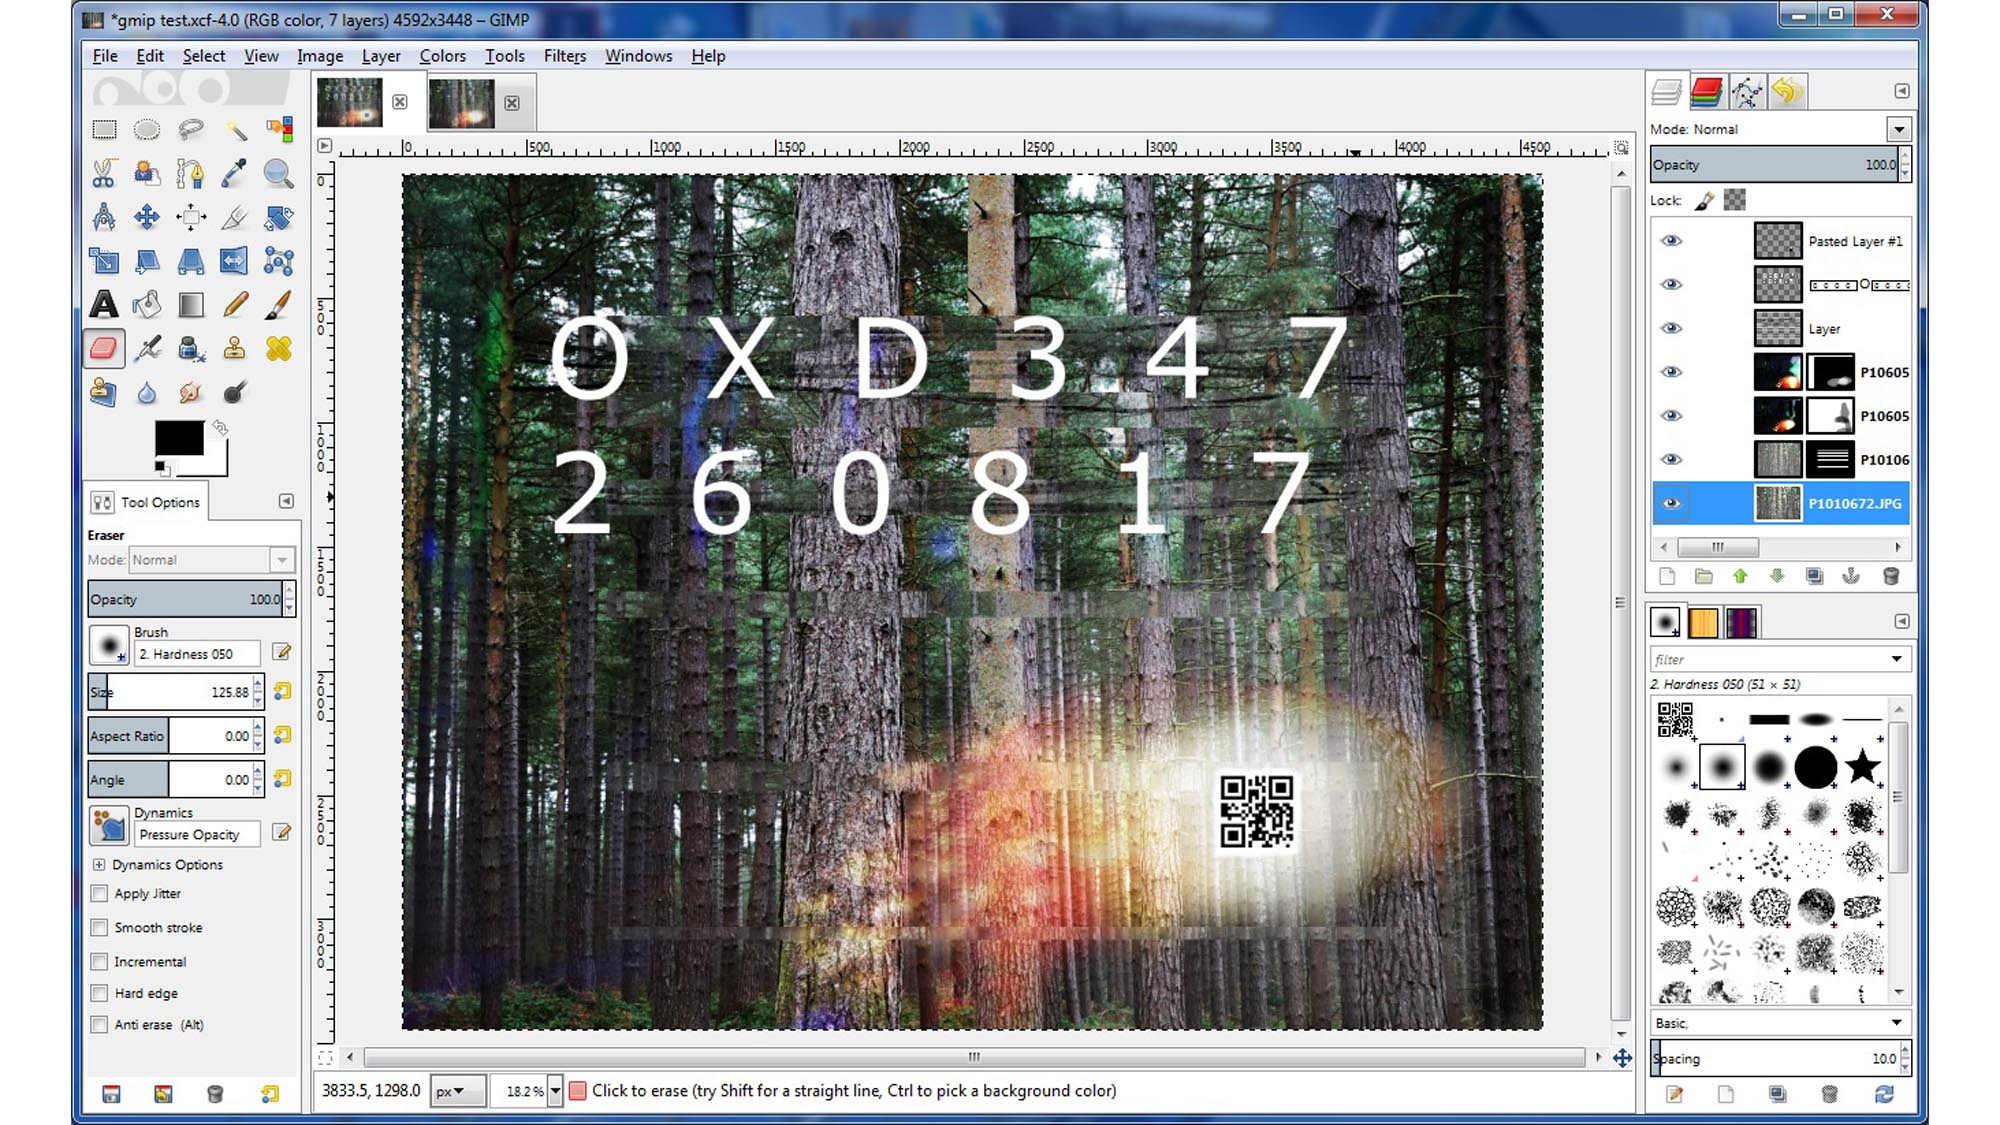 Program for editing photos. Best photo editing software - free, simple, professional 96